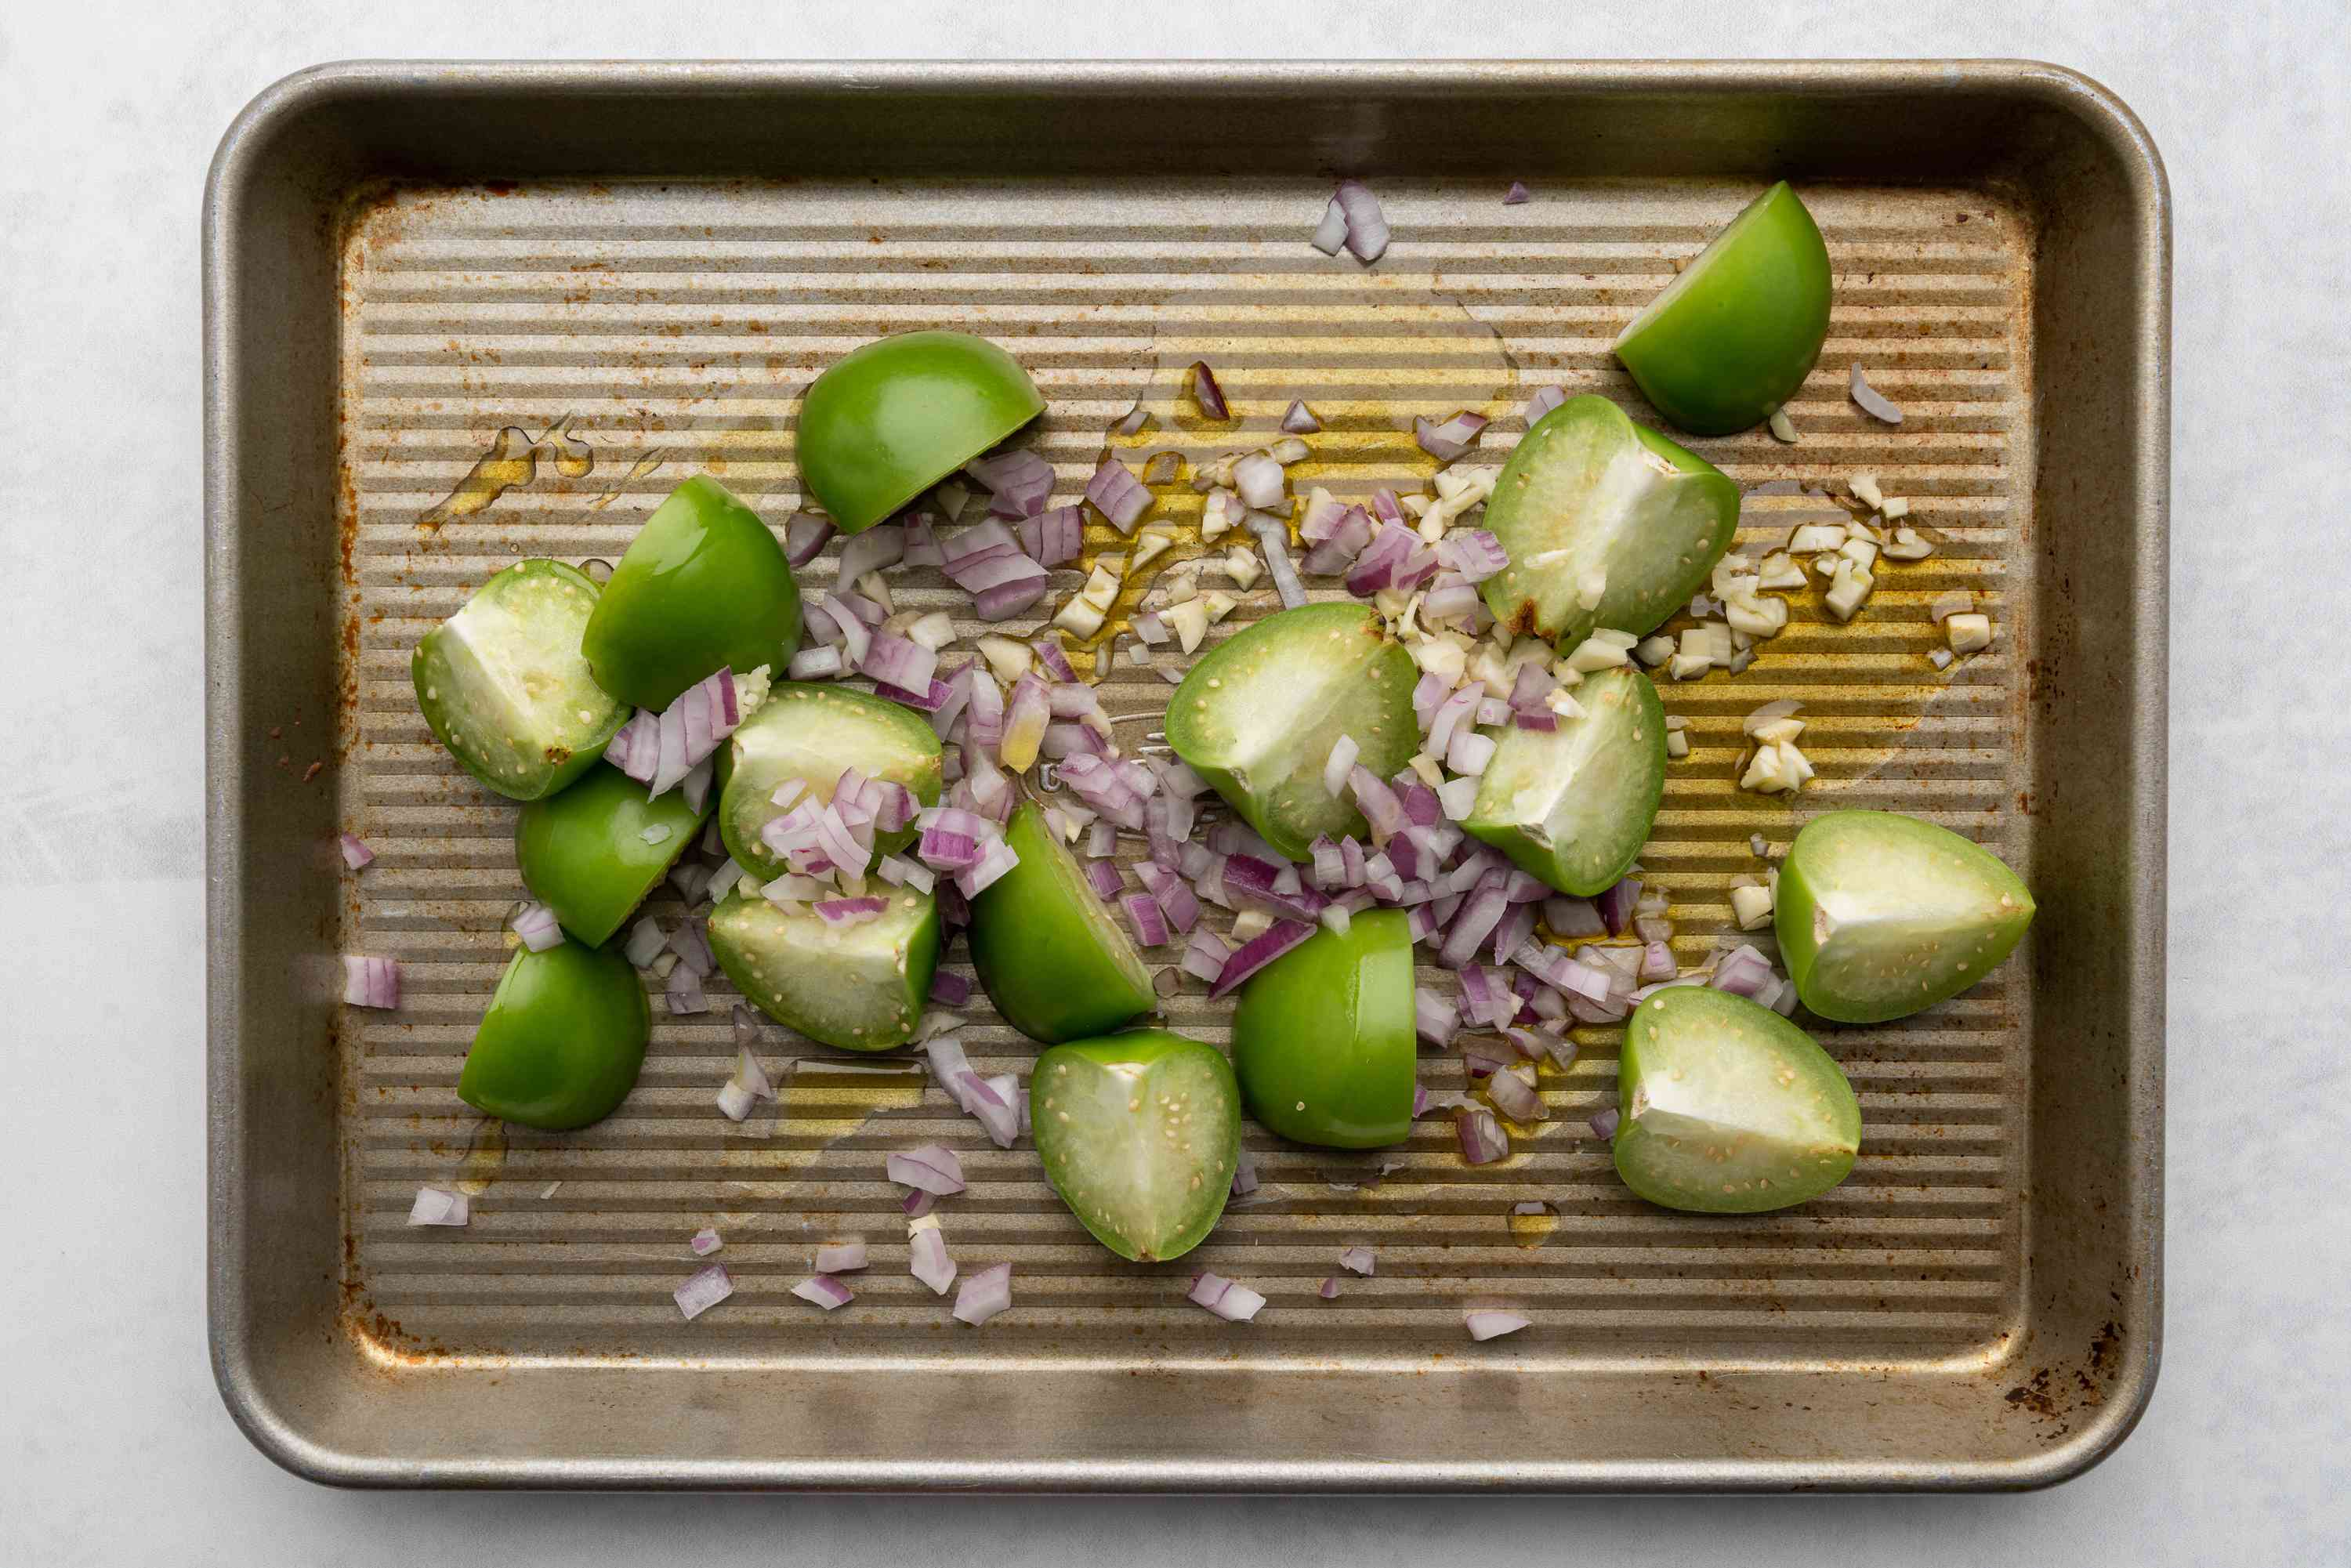 tomatillos, onions, and garlic coated with olive oil on a sheet pan